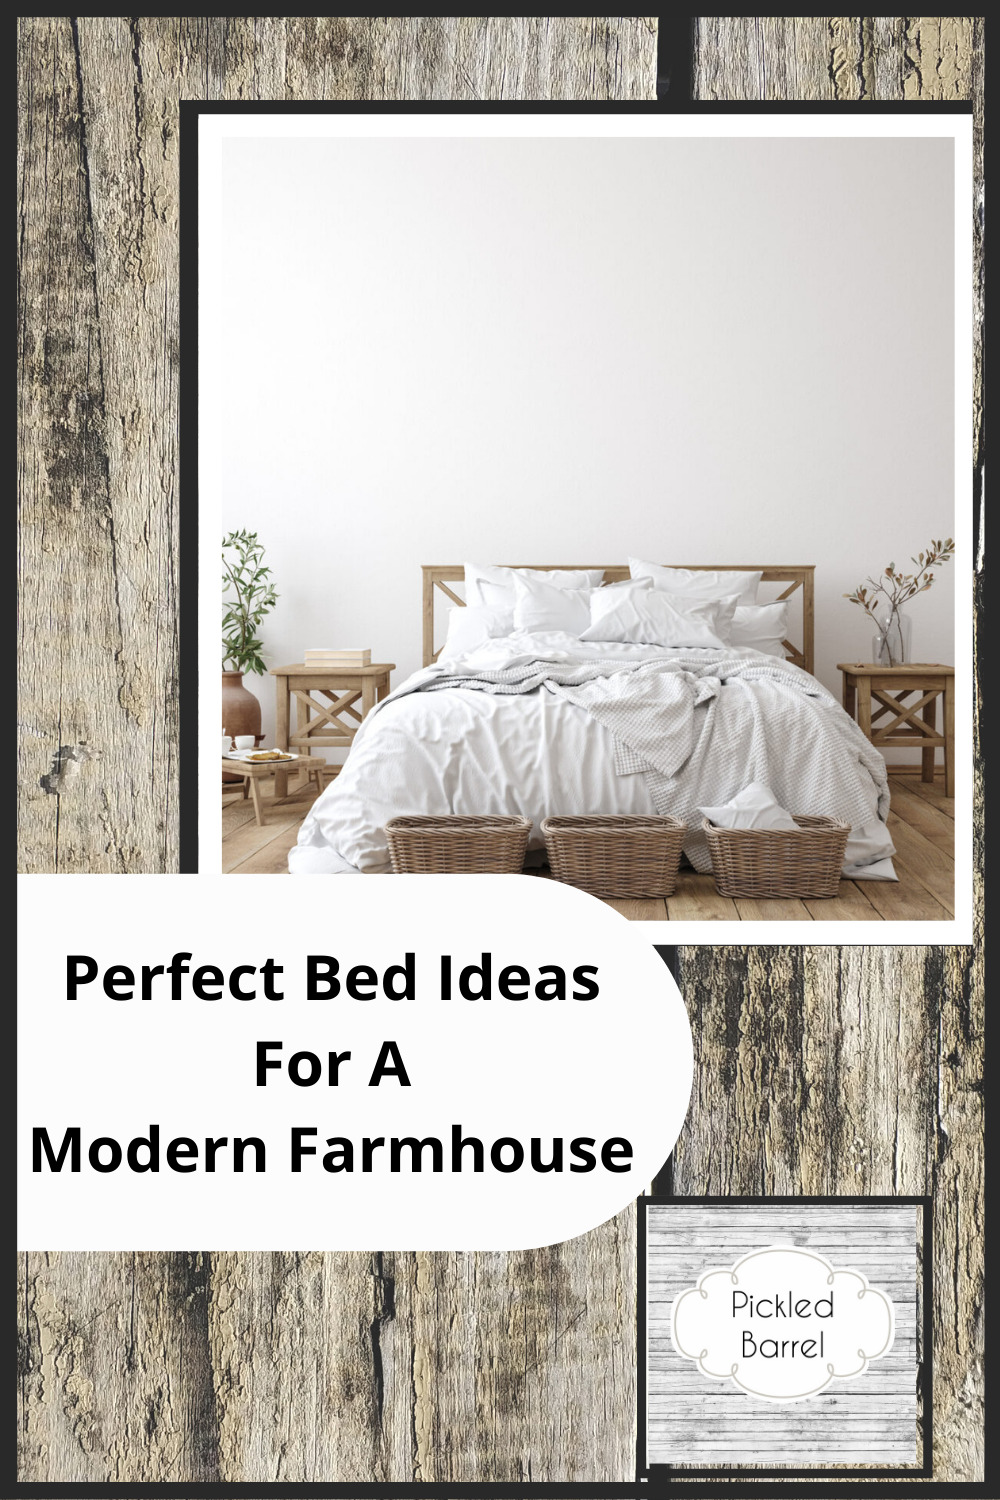 Pickledbarrel.com is the ultimate resource for all things rustic and farmhouse! Make sure every room of your house is absolutely perfect! Perfect your bedroom with these amazing farmhouse bed ideas!